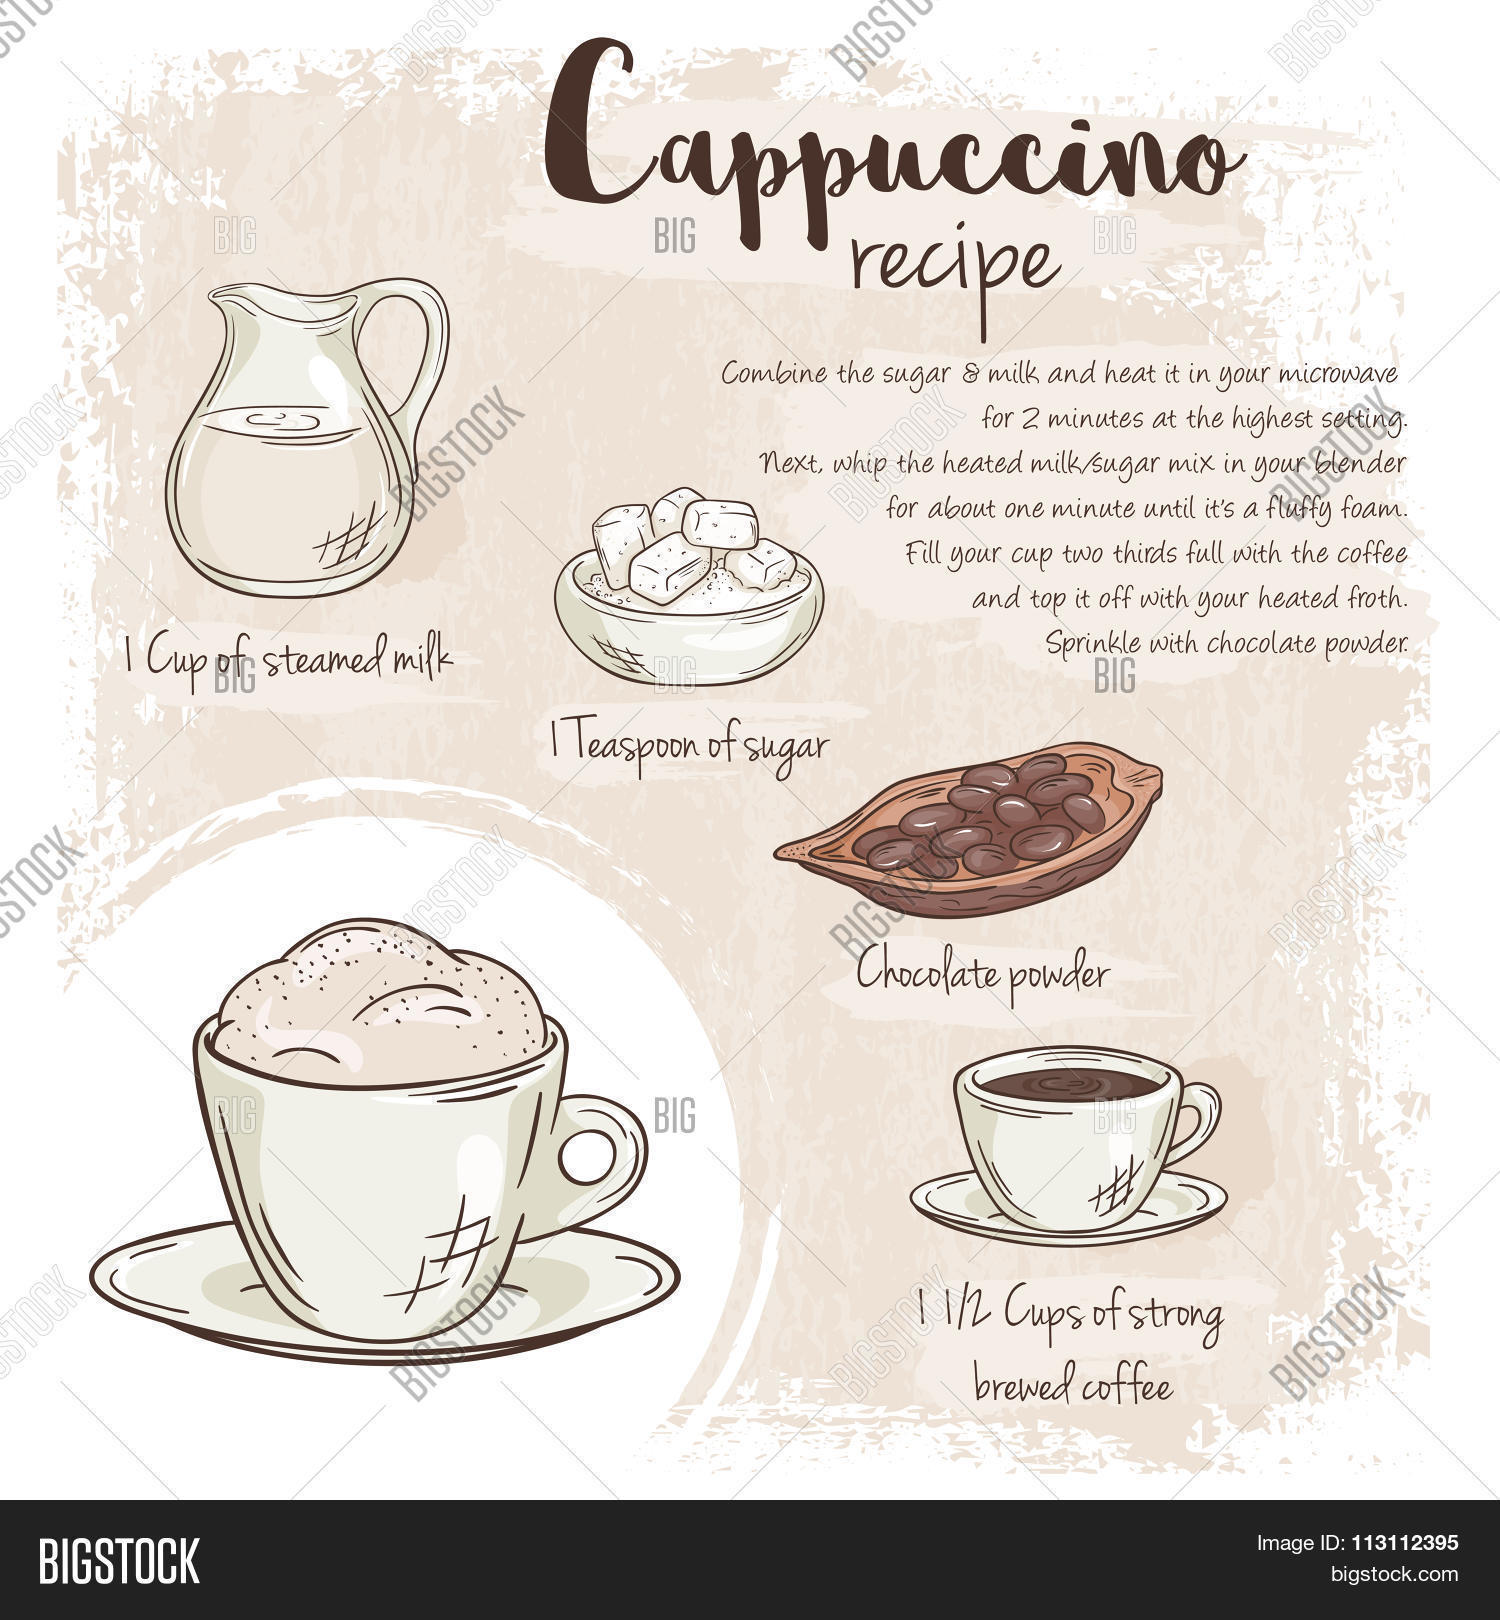 awesome cappuccino recipe Part - 5: awesome cappuccino recipe great ideas